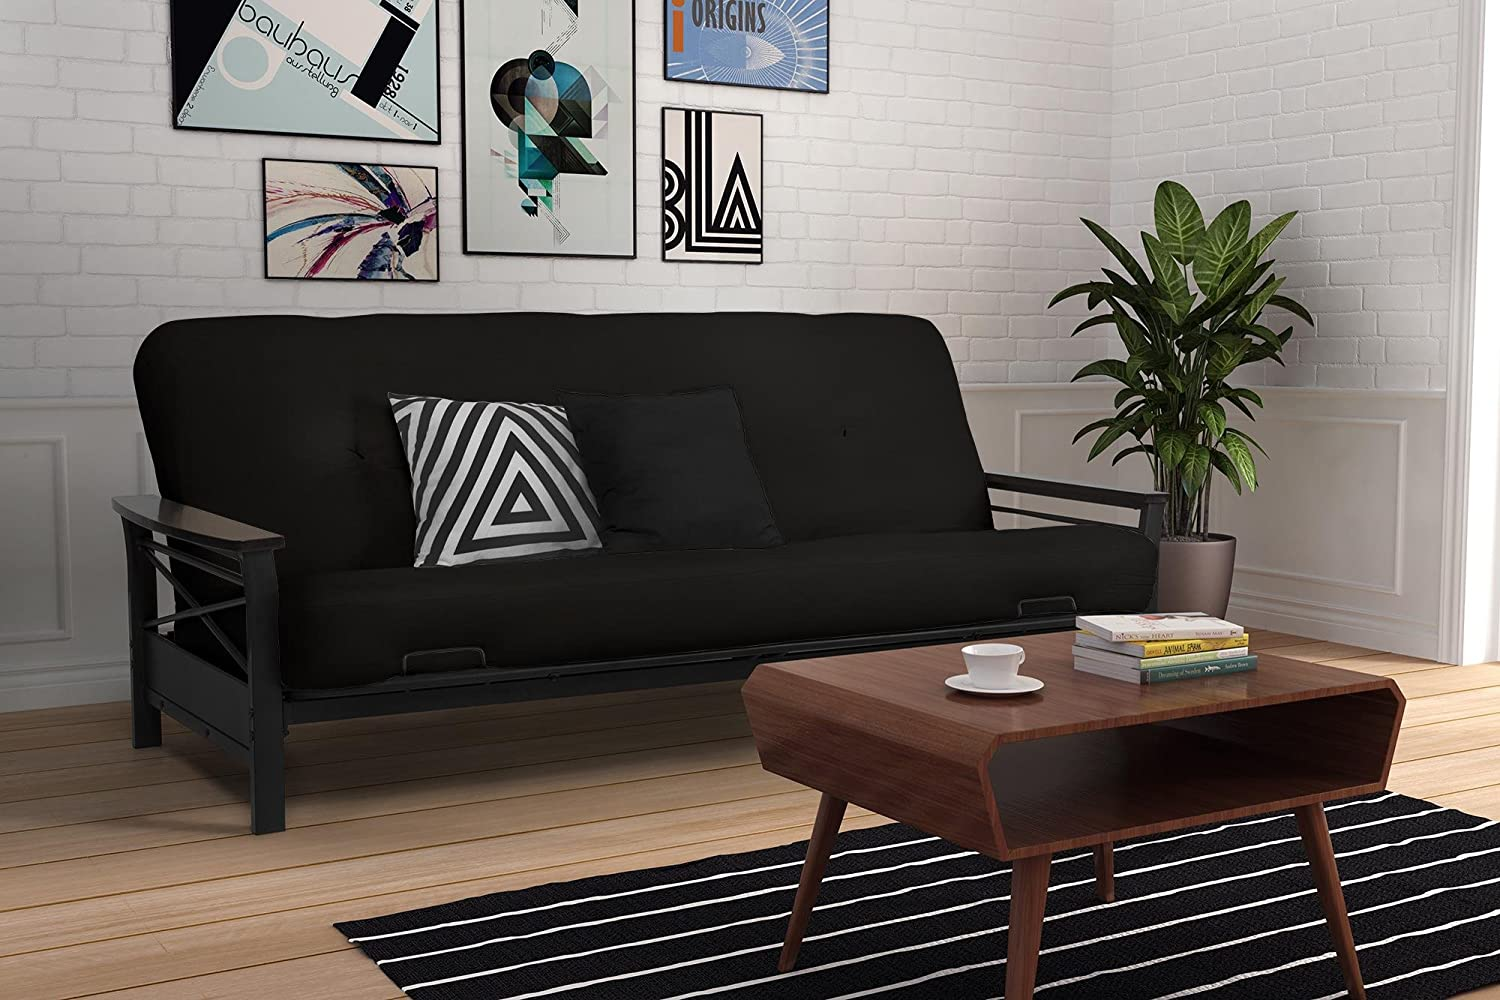 DHP Nadine Metal Futon Frame with Espresso Wood Armrests, Full Size, Mattress Not Included Dorel Home Furnishings 2101959